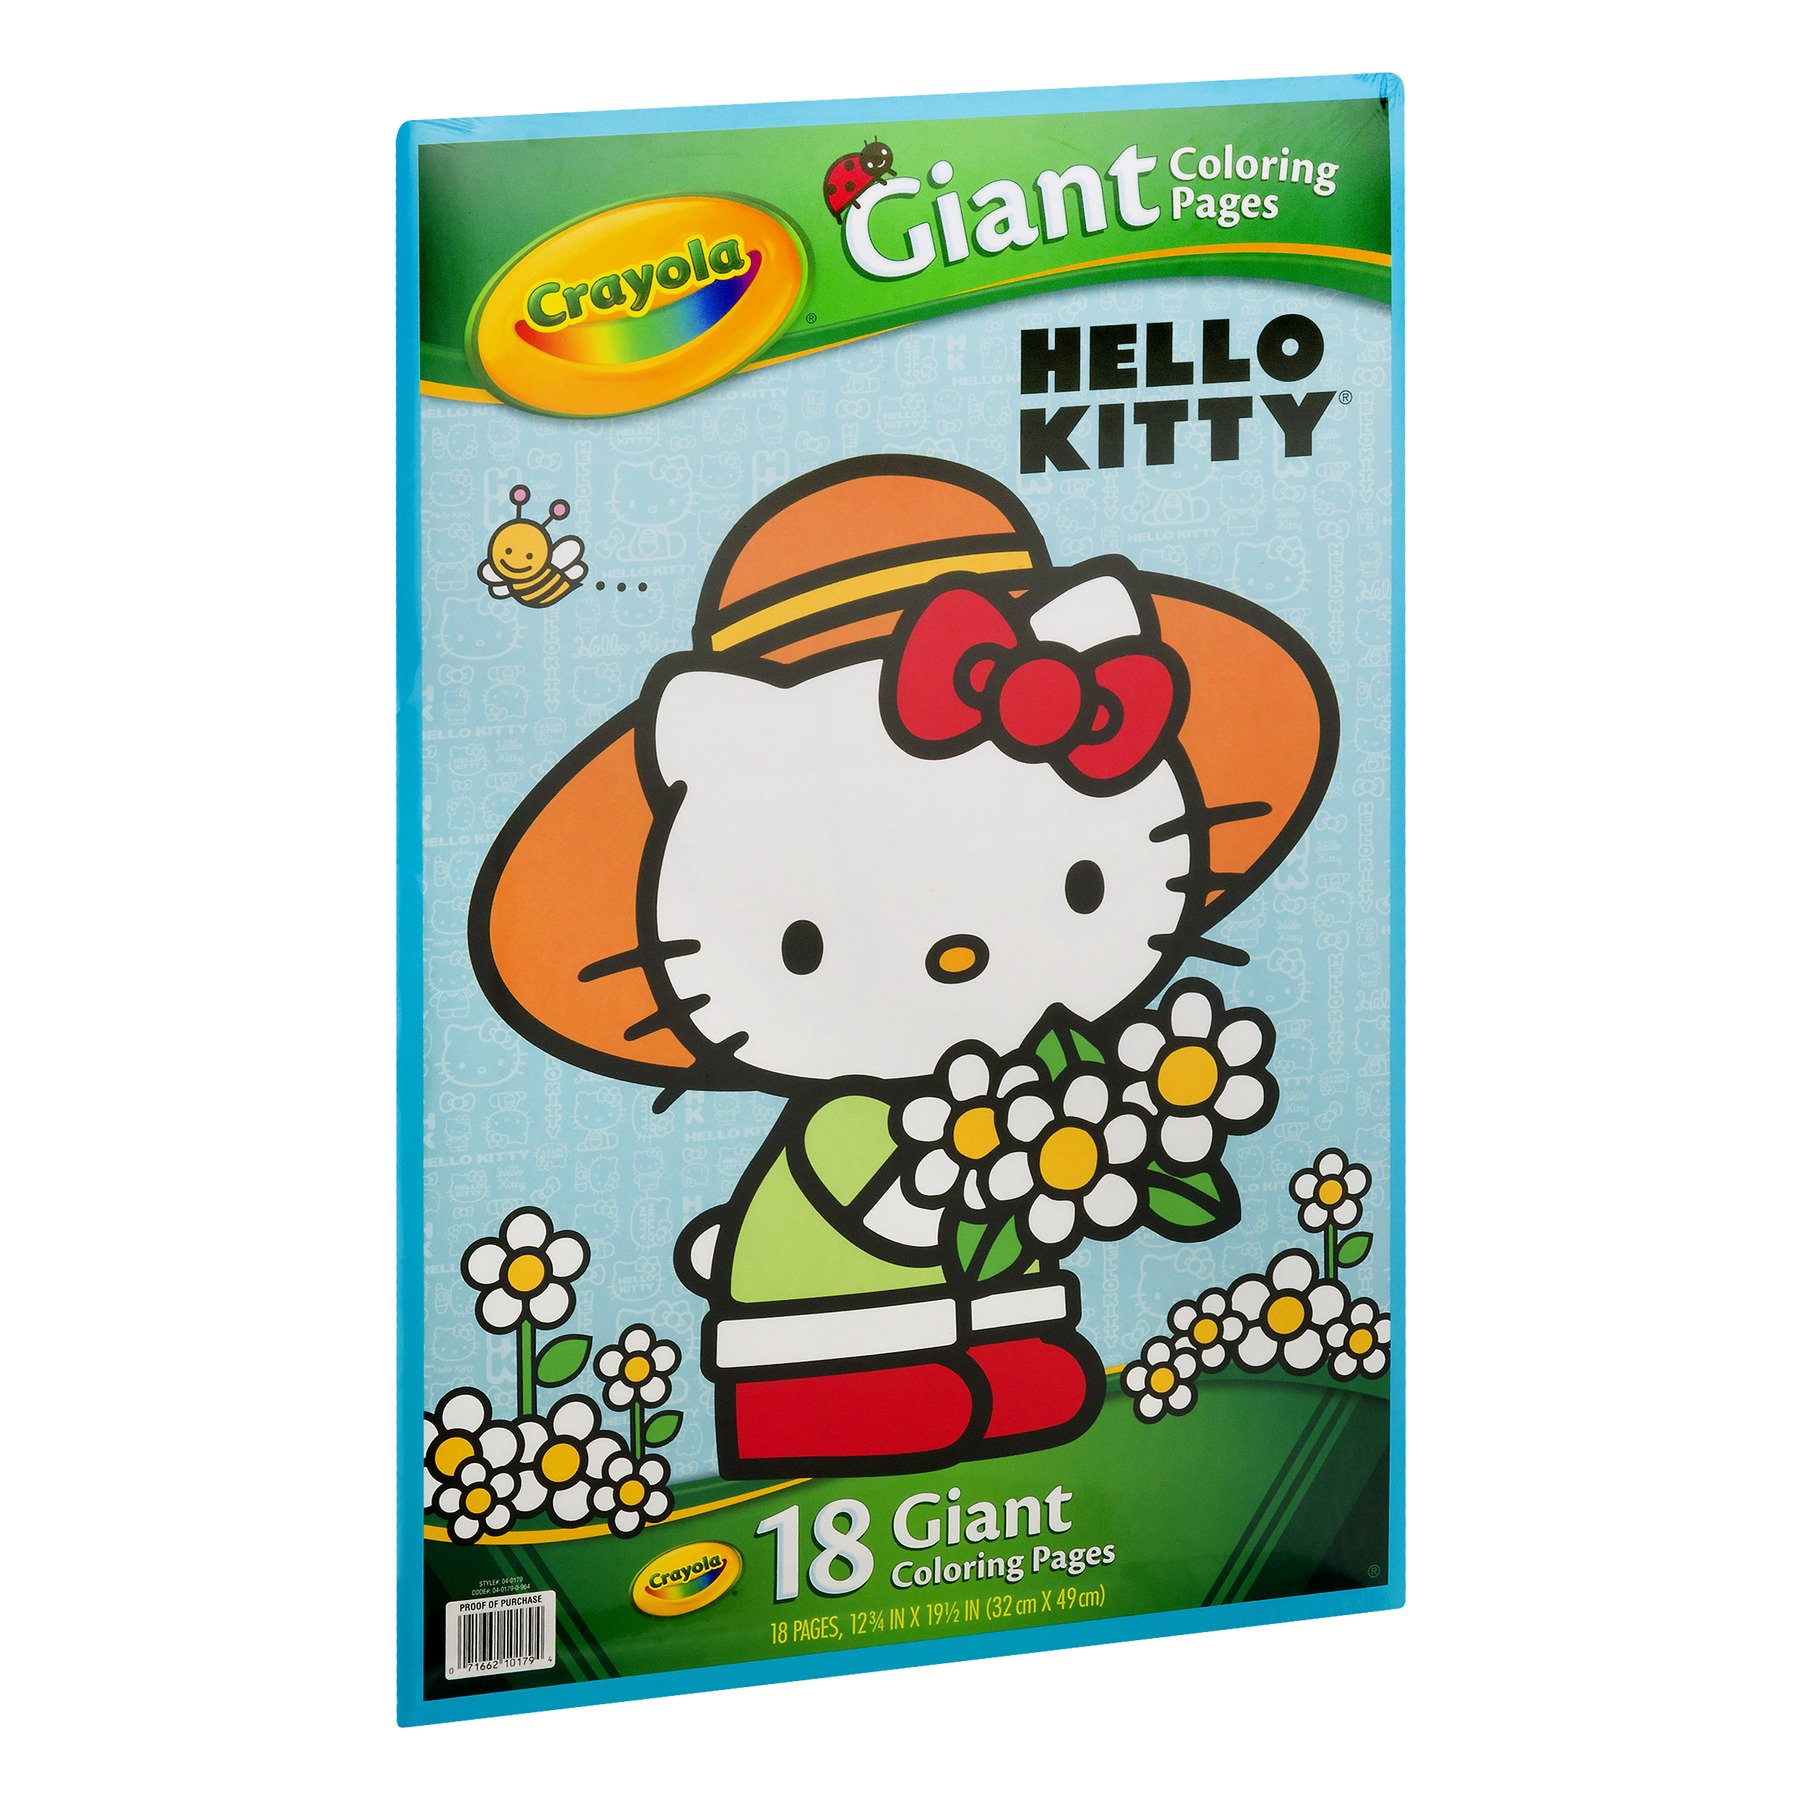 Crayola Giant Coloring Pages Hello Kitty 18 Count